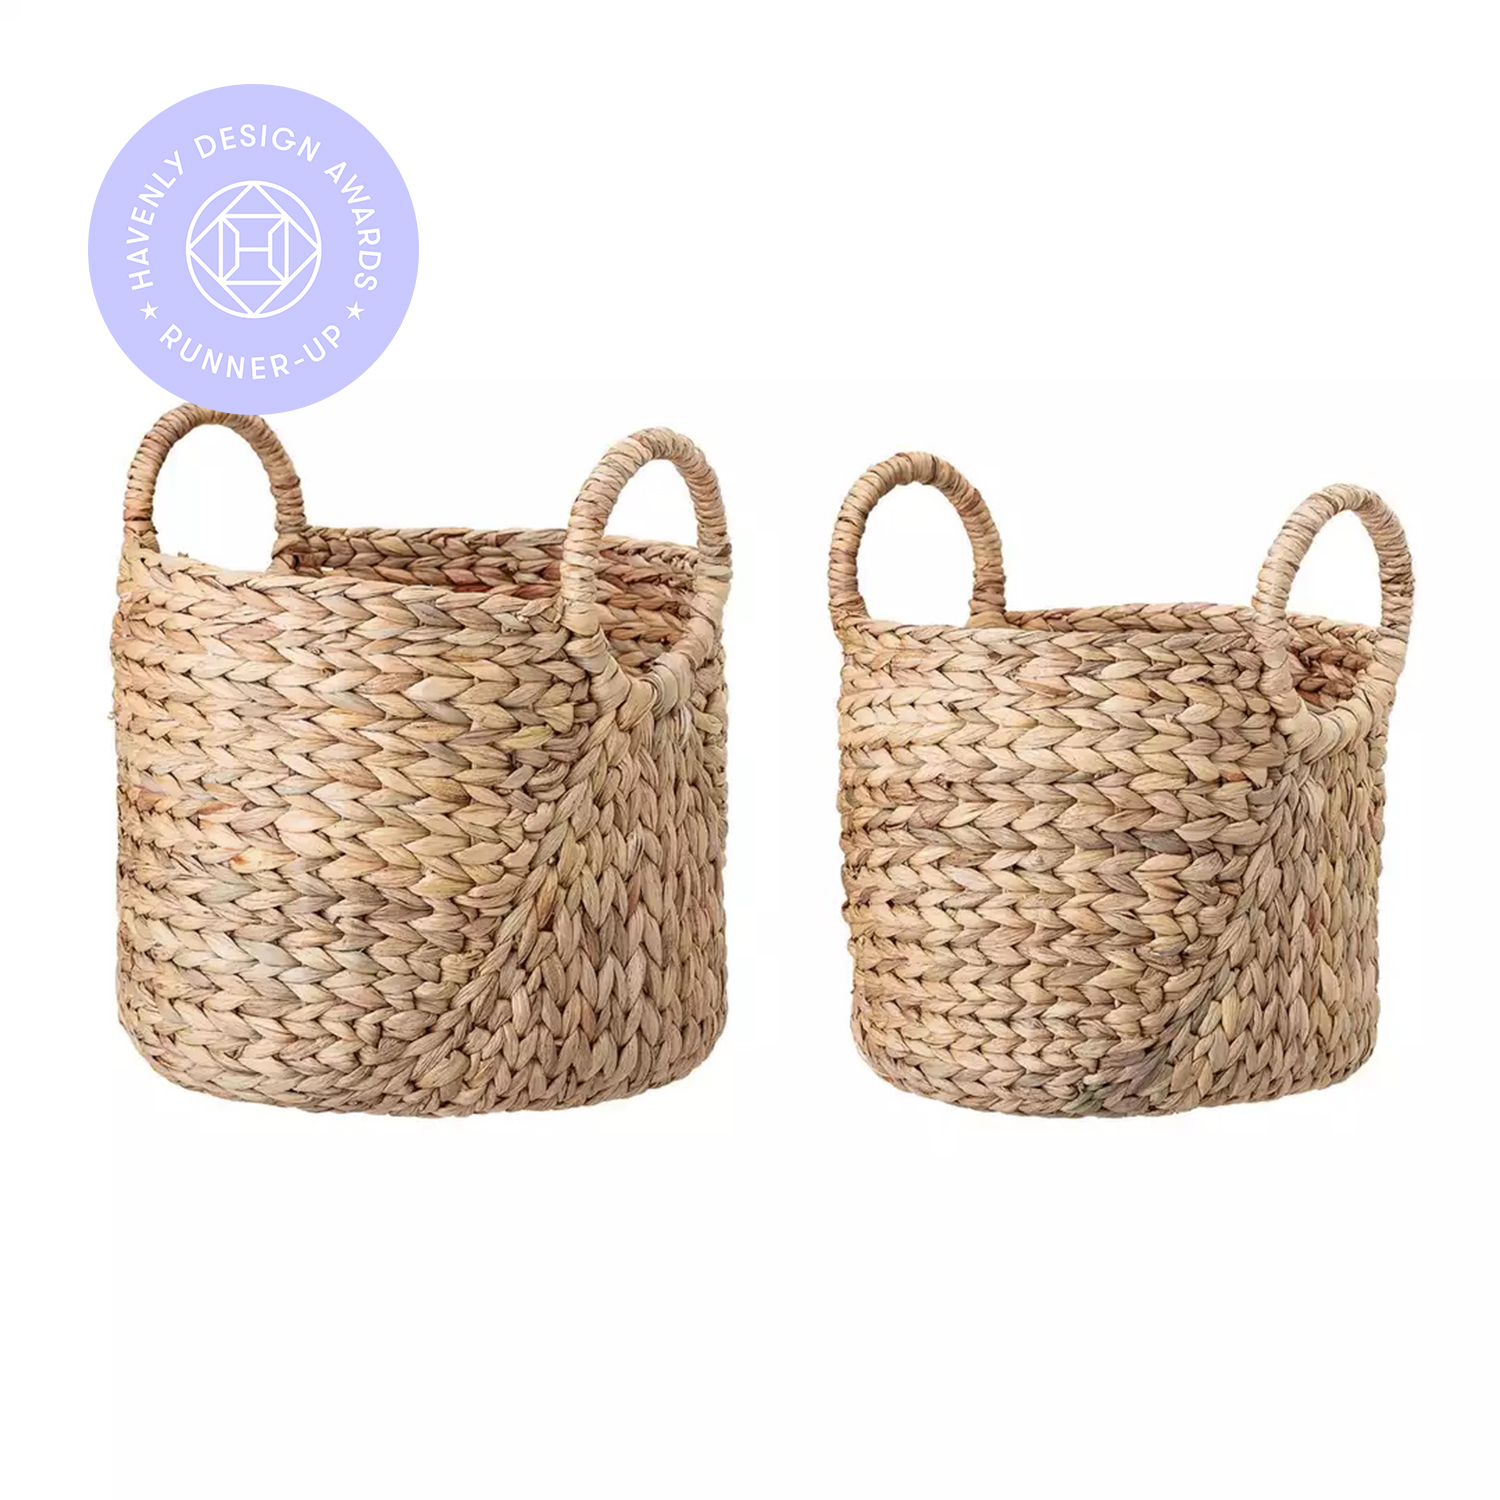 Handwoven Beige Seagrass Baskets with Round Handles (Set of 2 Sizes)